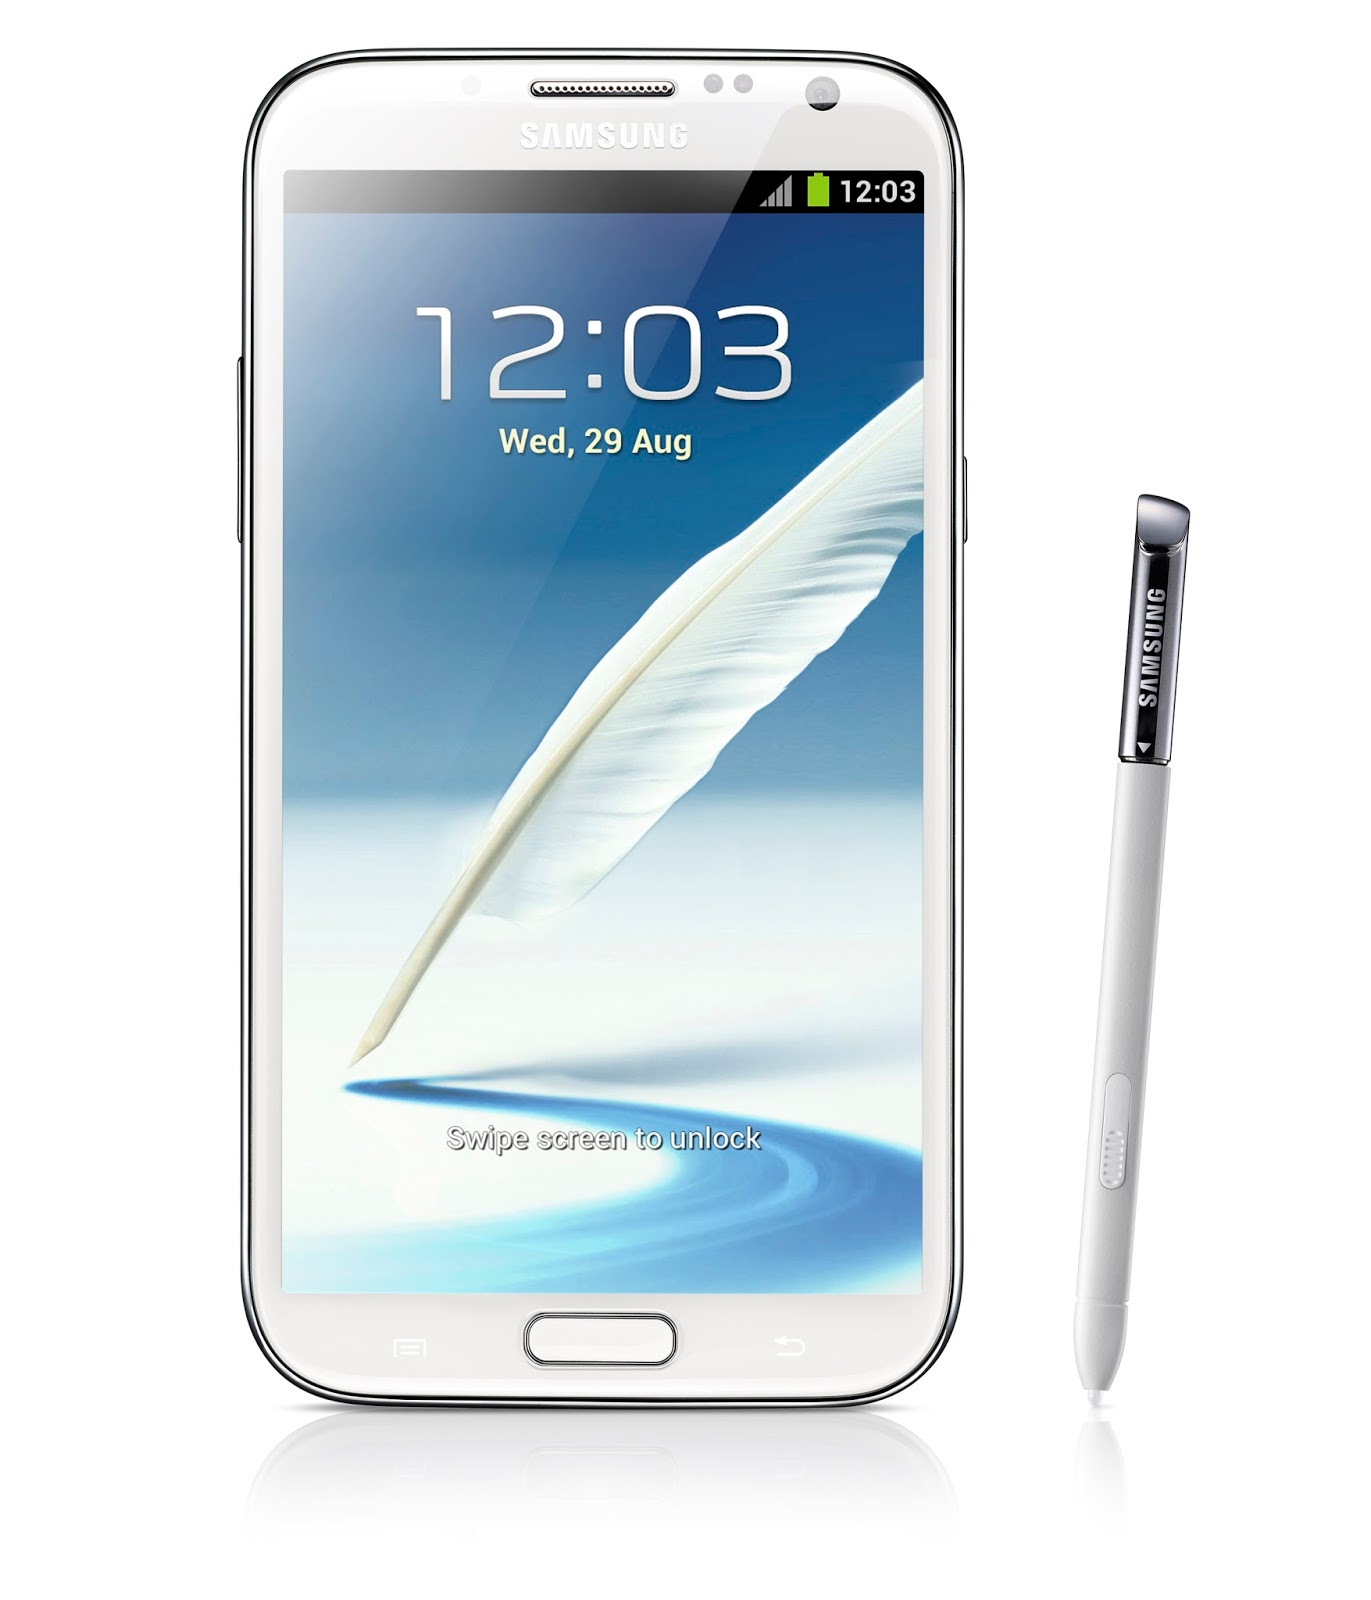 How To Root| Galaxy Note 2 SHV-E250 S,L,k Root And Recovery